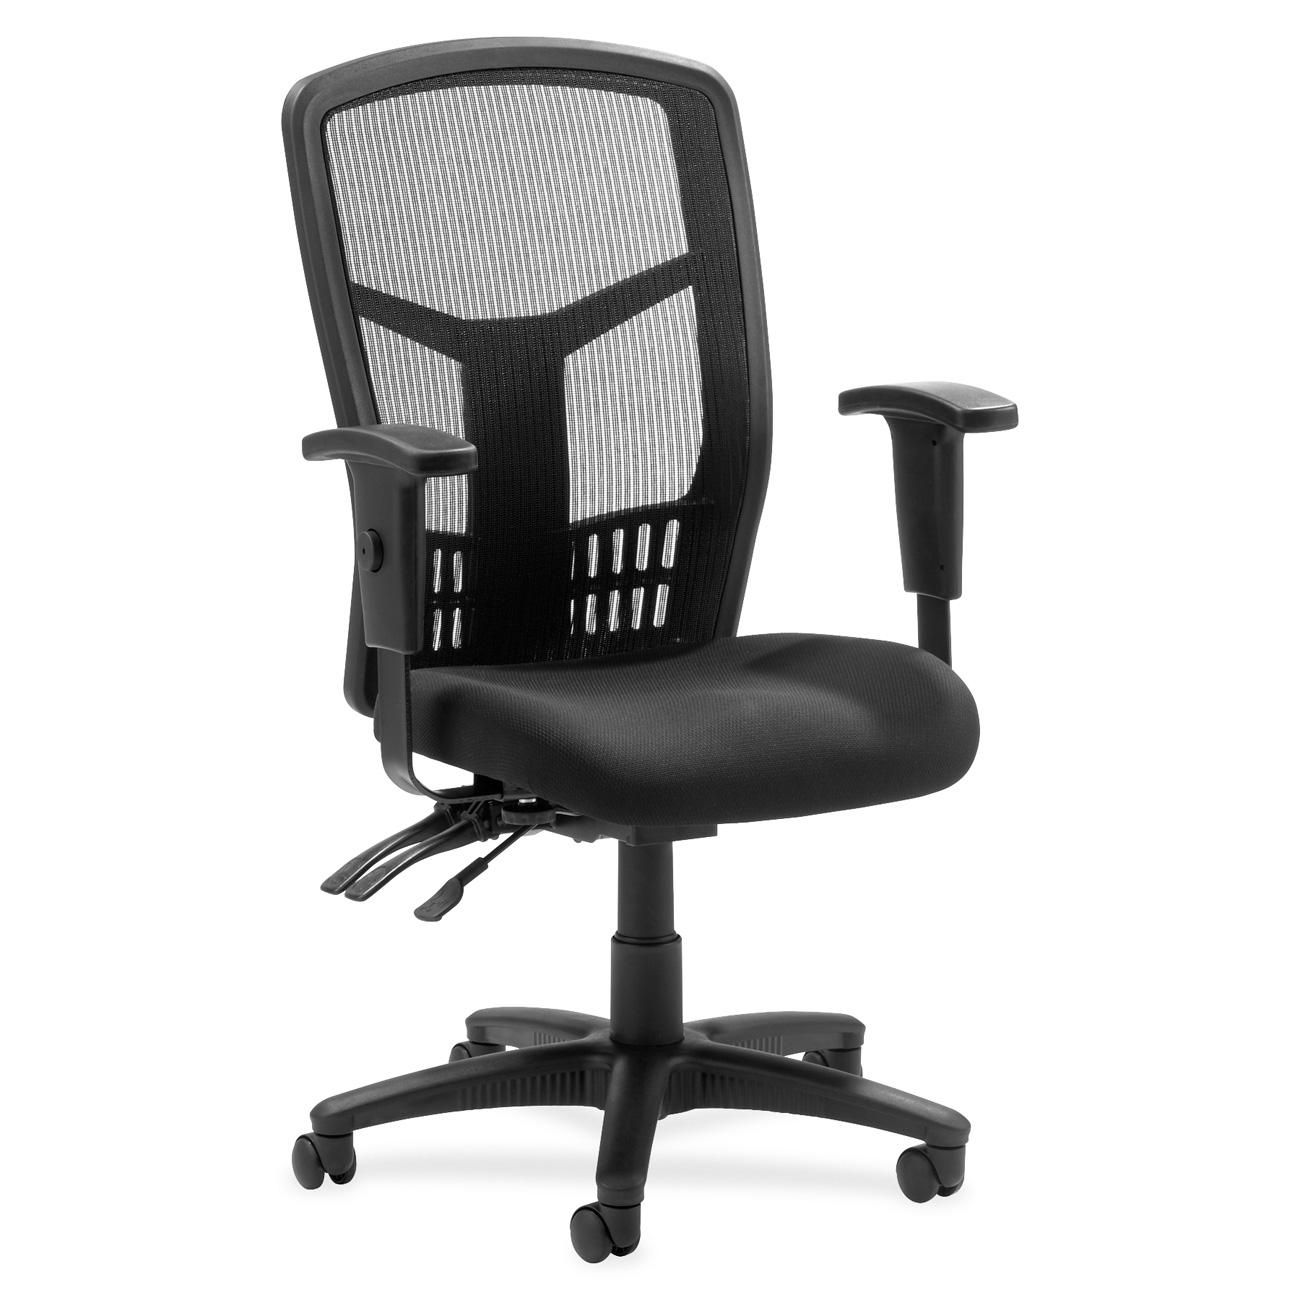 Lorell 86000 Series Executive Mesh Back